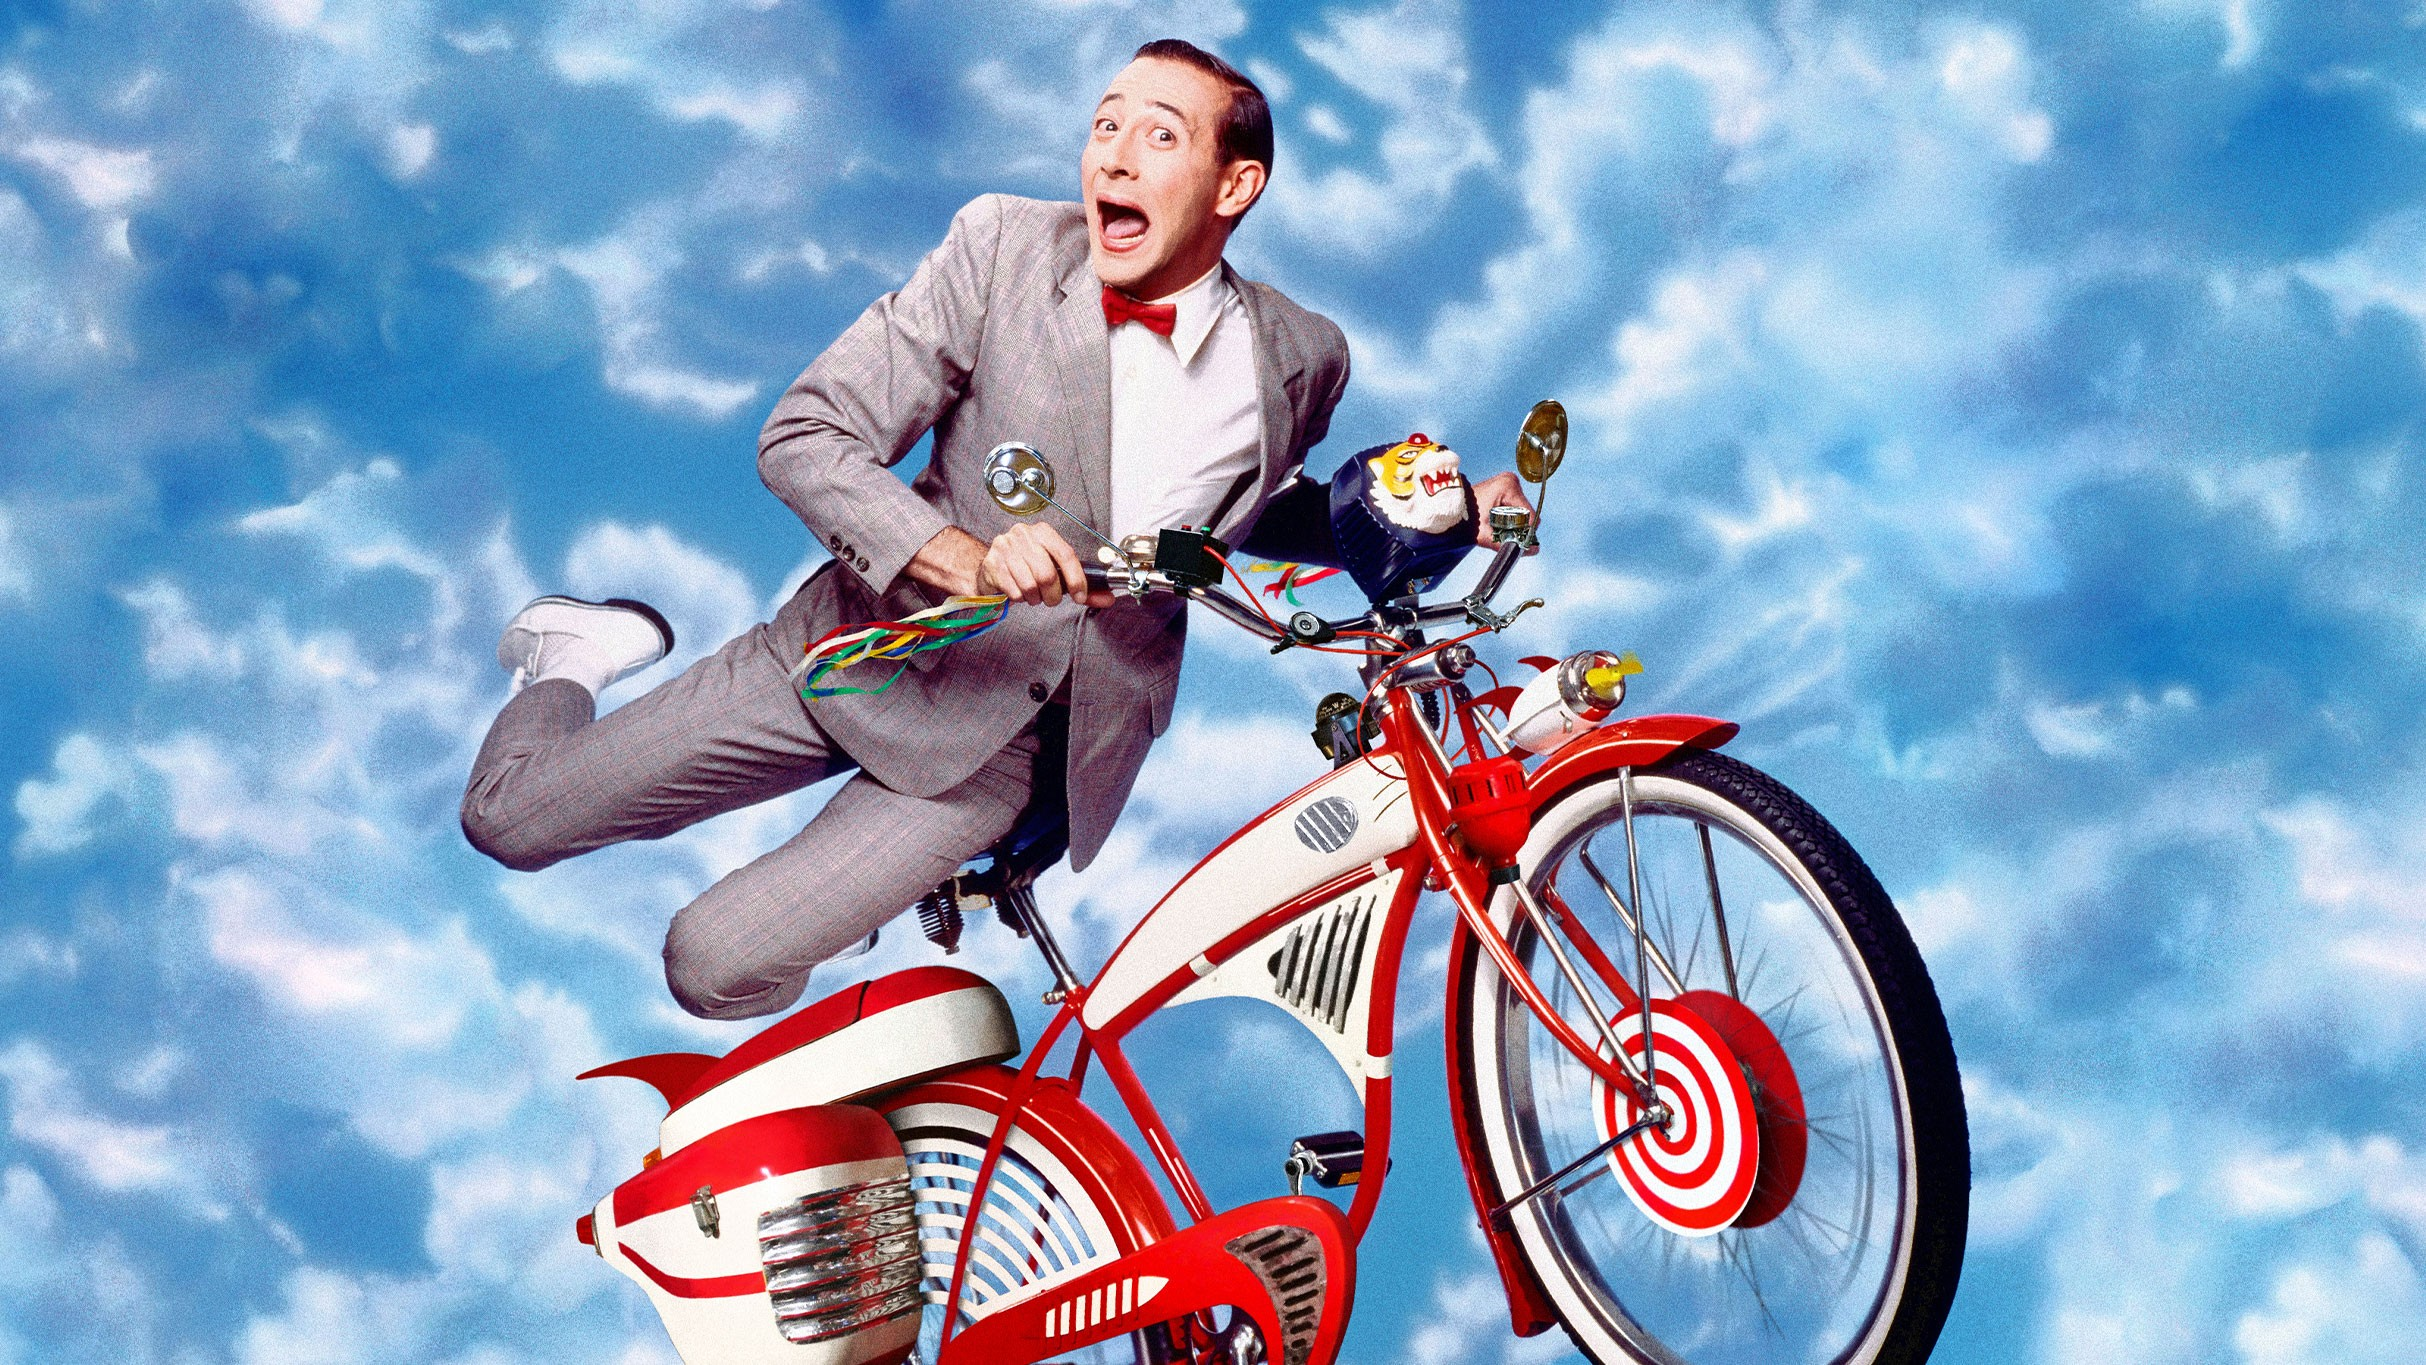 comPOSERS Episode 112: Pee-Wee's Big Adventure